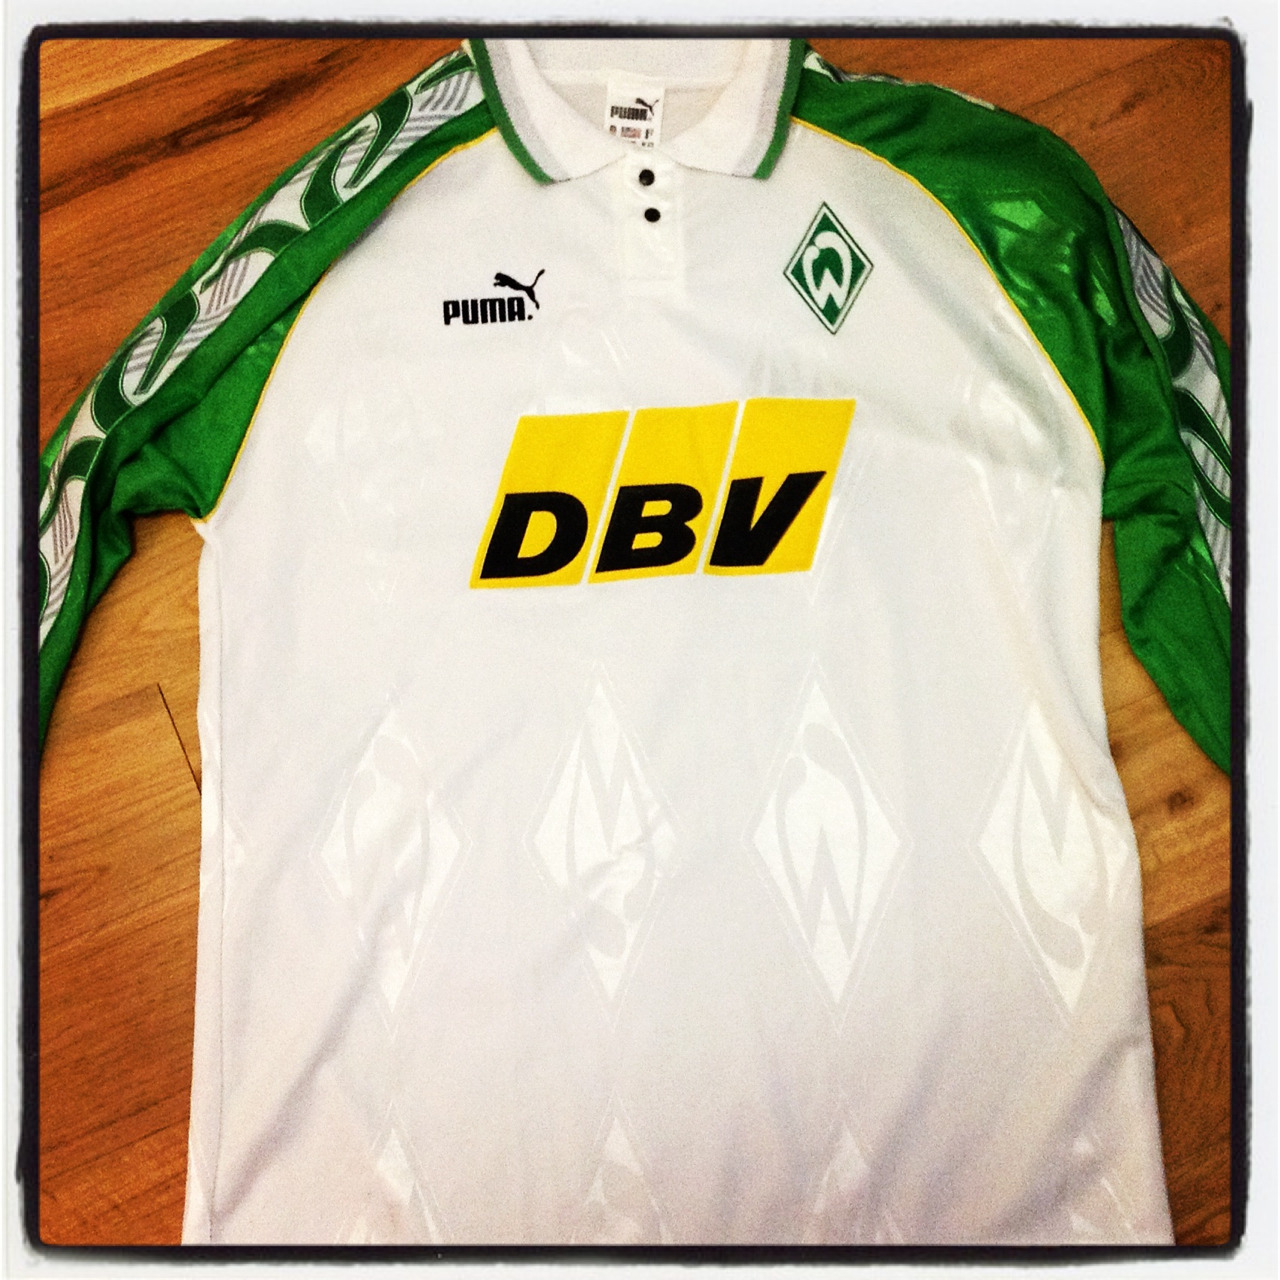 Werder Bremen, Puma, 1995/6 football shirt